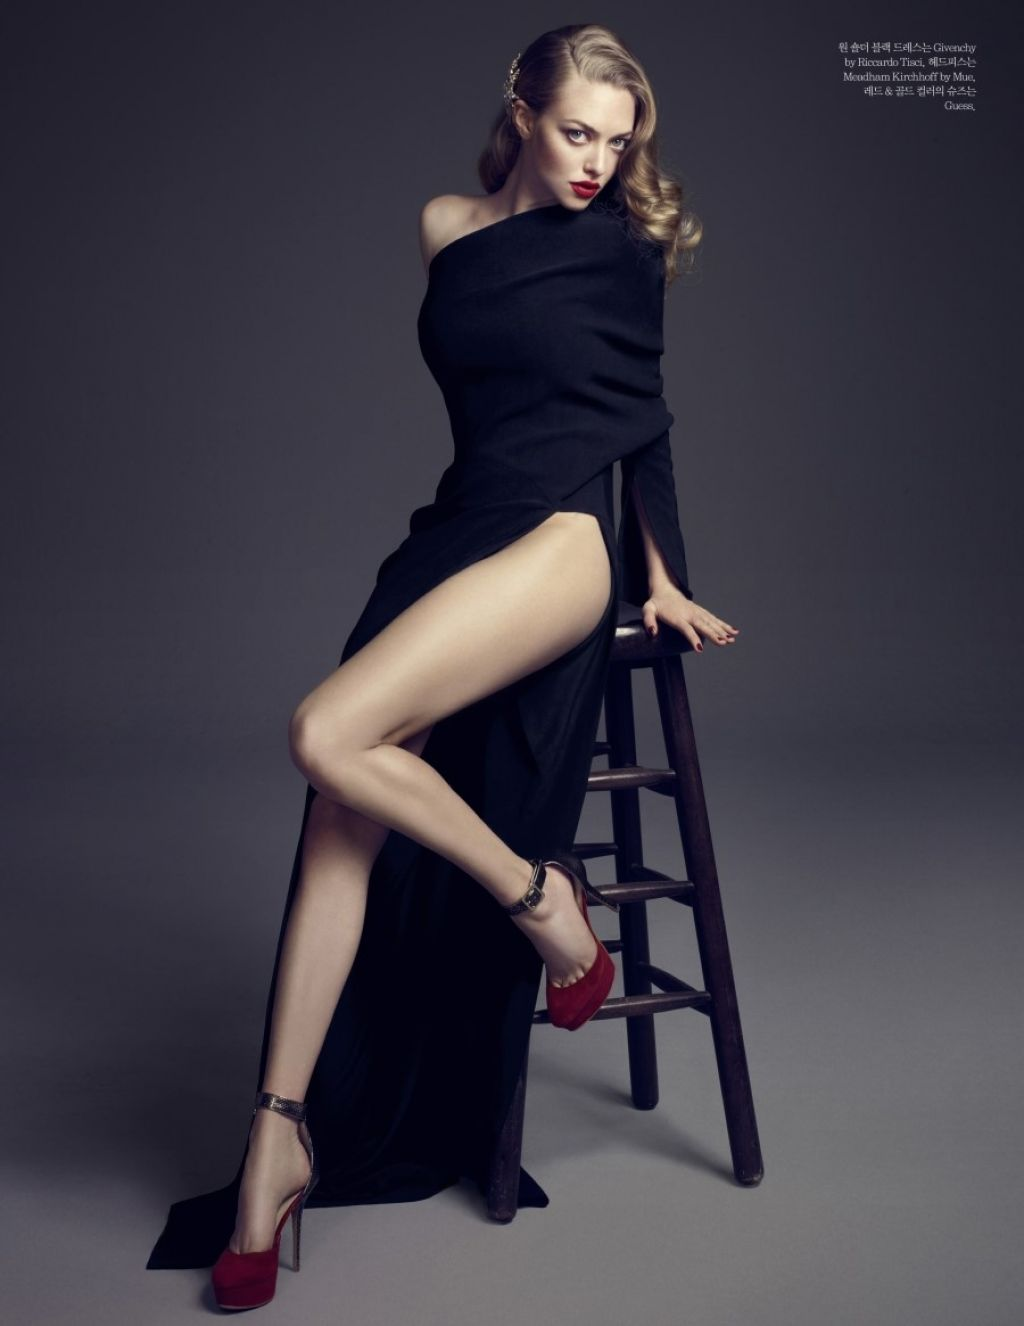 Amanda Seyfried ELLE Magazine Korea January 2014 Issue